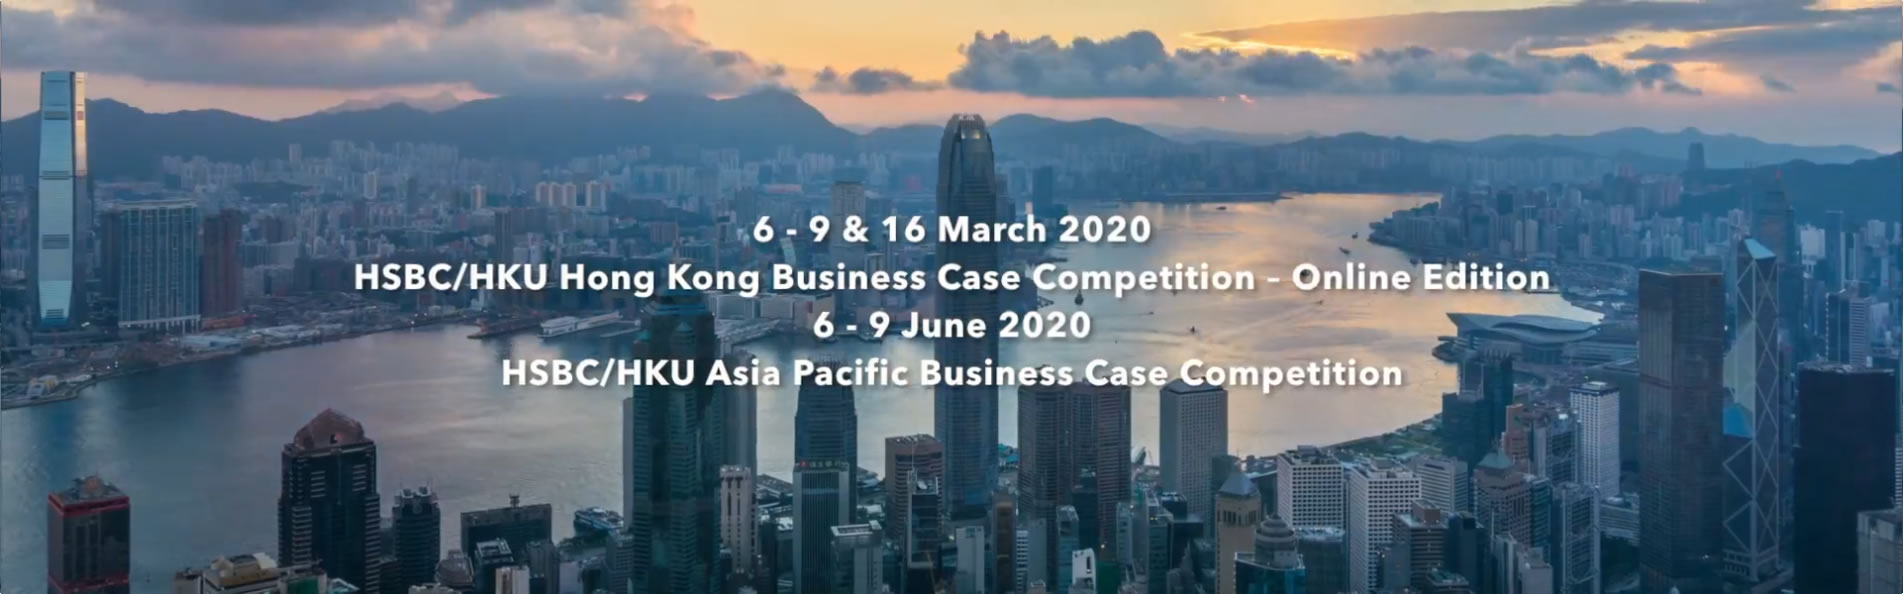 ACRC - Asia Case Research Centre - Devoted to advancing business